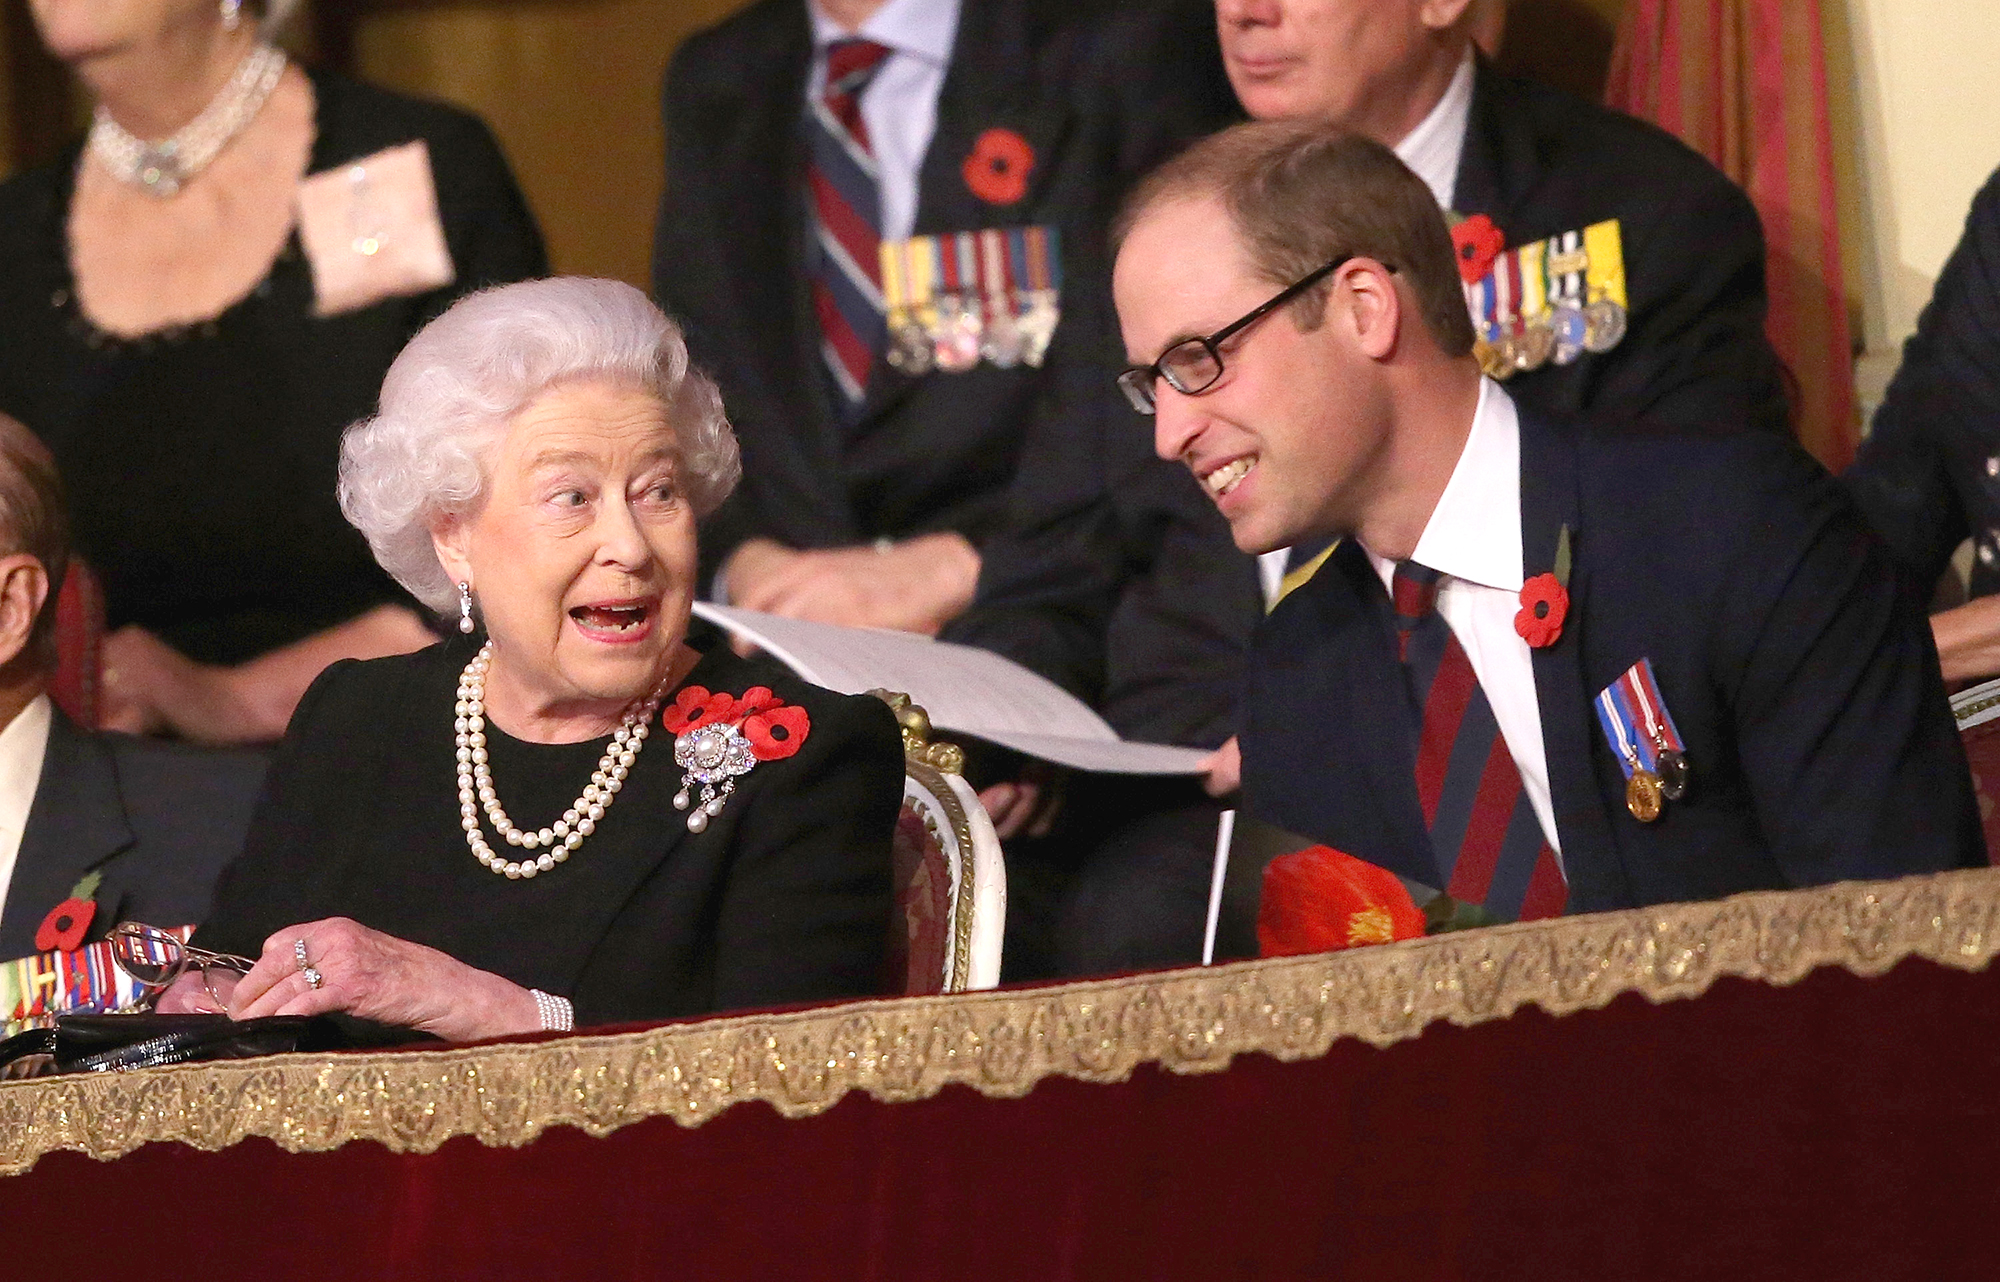 """Royal Family Nicknames - When Prince William was young, he had a hard time saying """"granny,"""" which is what the queen's grandchildren call her. According to a memoir by Richard Kay , the heir to the throne started calling her """"Gary"""" as a result."""